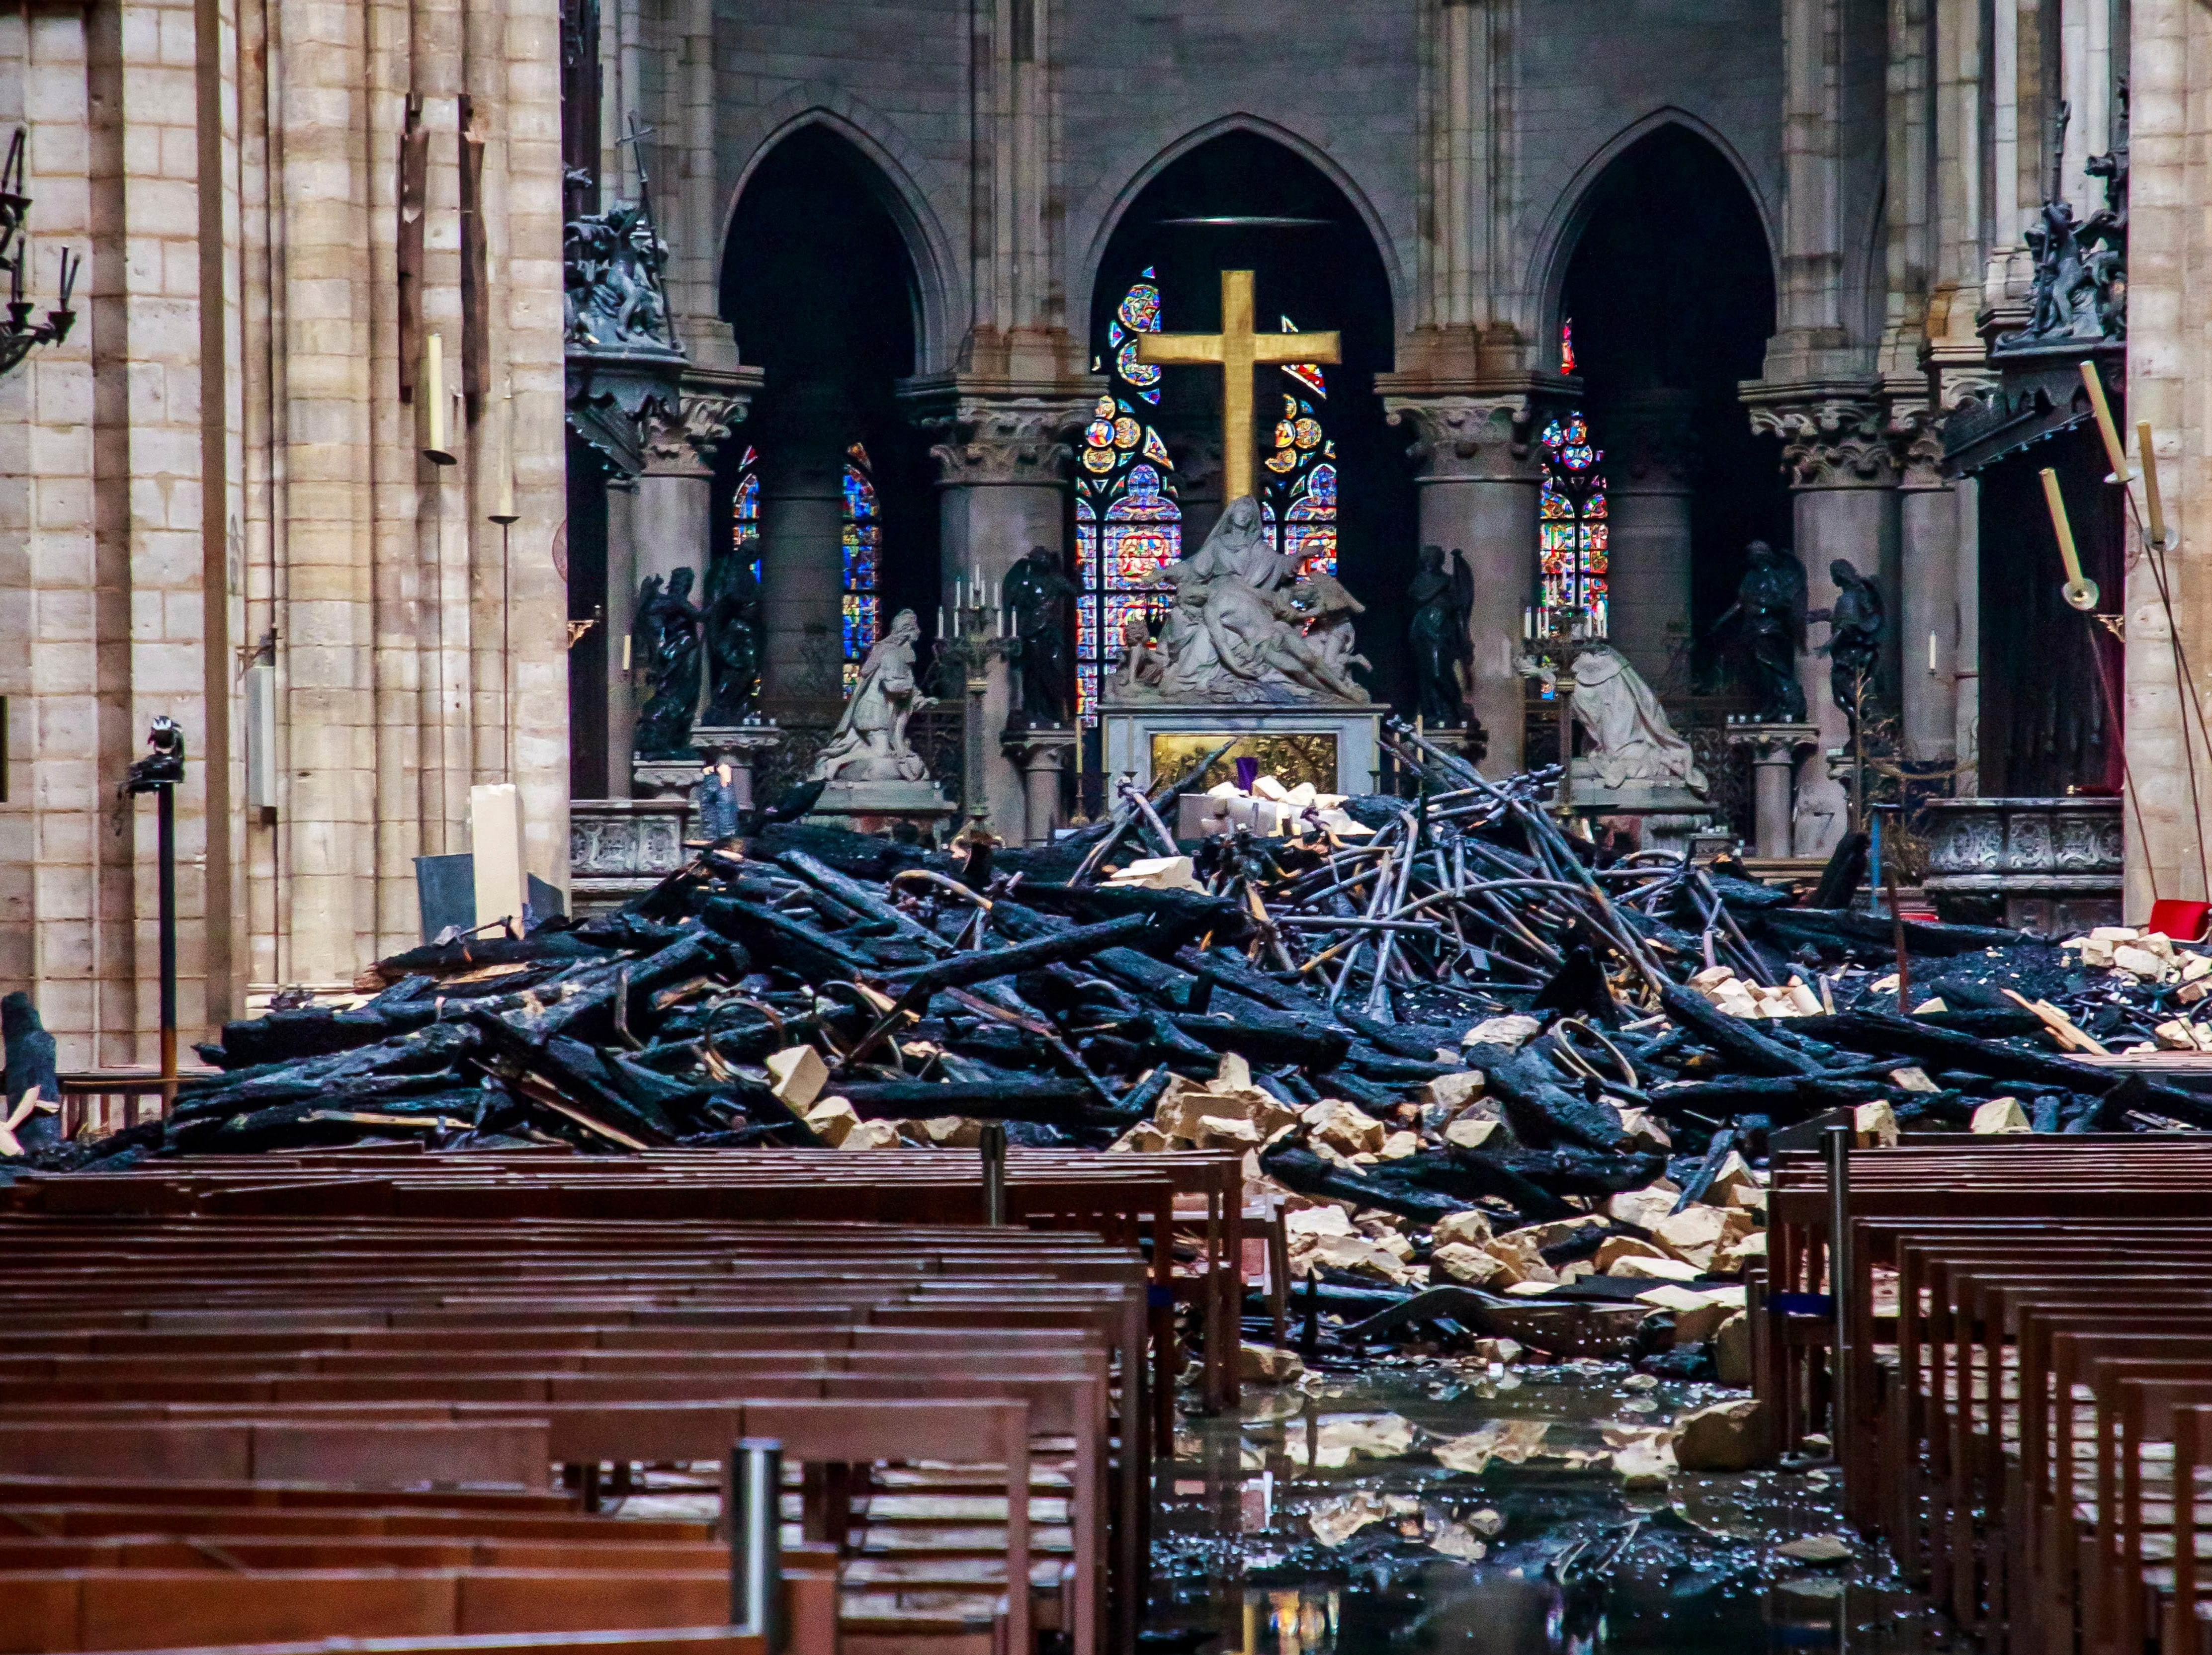 A hole is seen in the dome inside Notre Dame cathedral in Paris, Tuesday, April 16, 2019. Firefighters declared success Tuesday in a more than 12-hour battle to extinguish an inferno engulfing Paris' iconic Notre Dame cathedral that claimed its spire and roof, but spared its bell towers and the purported Crown of Christ.